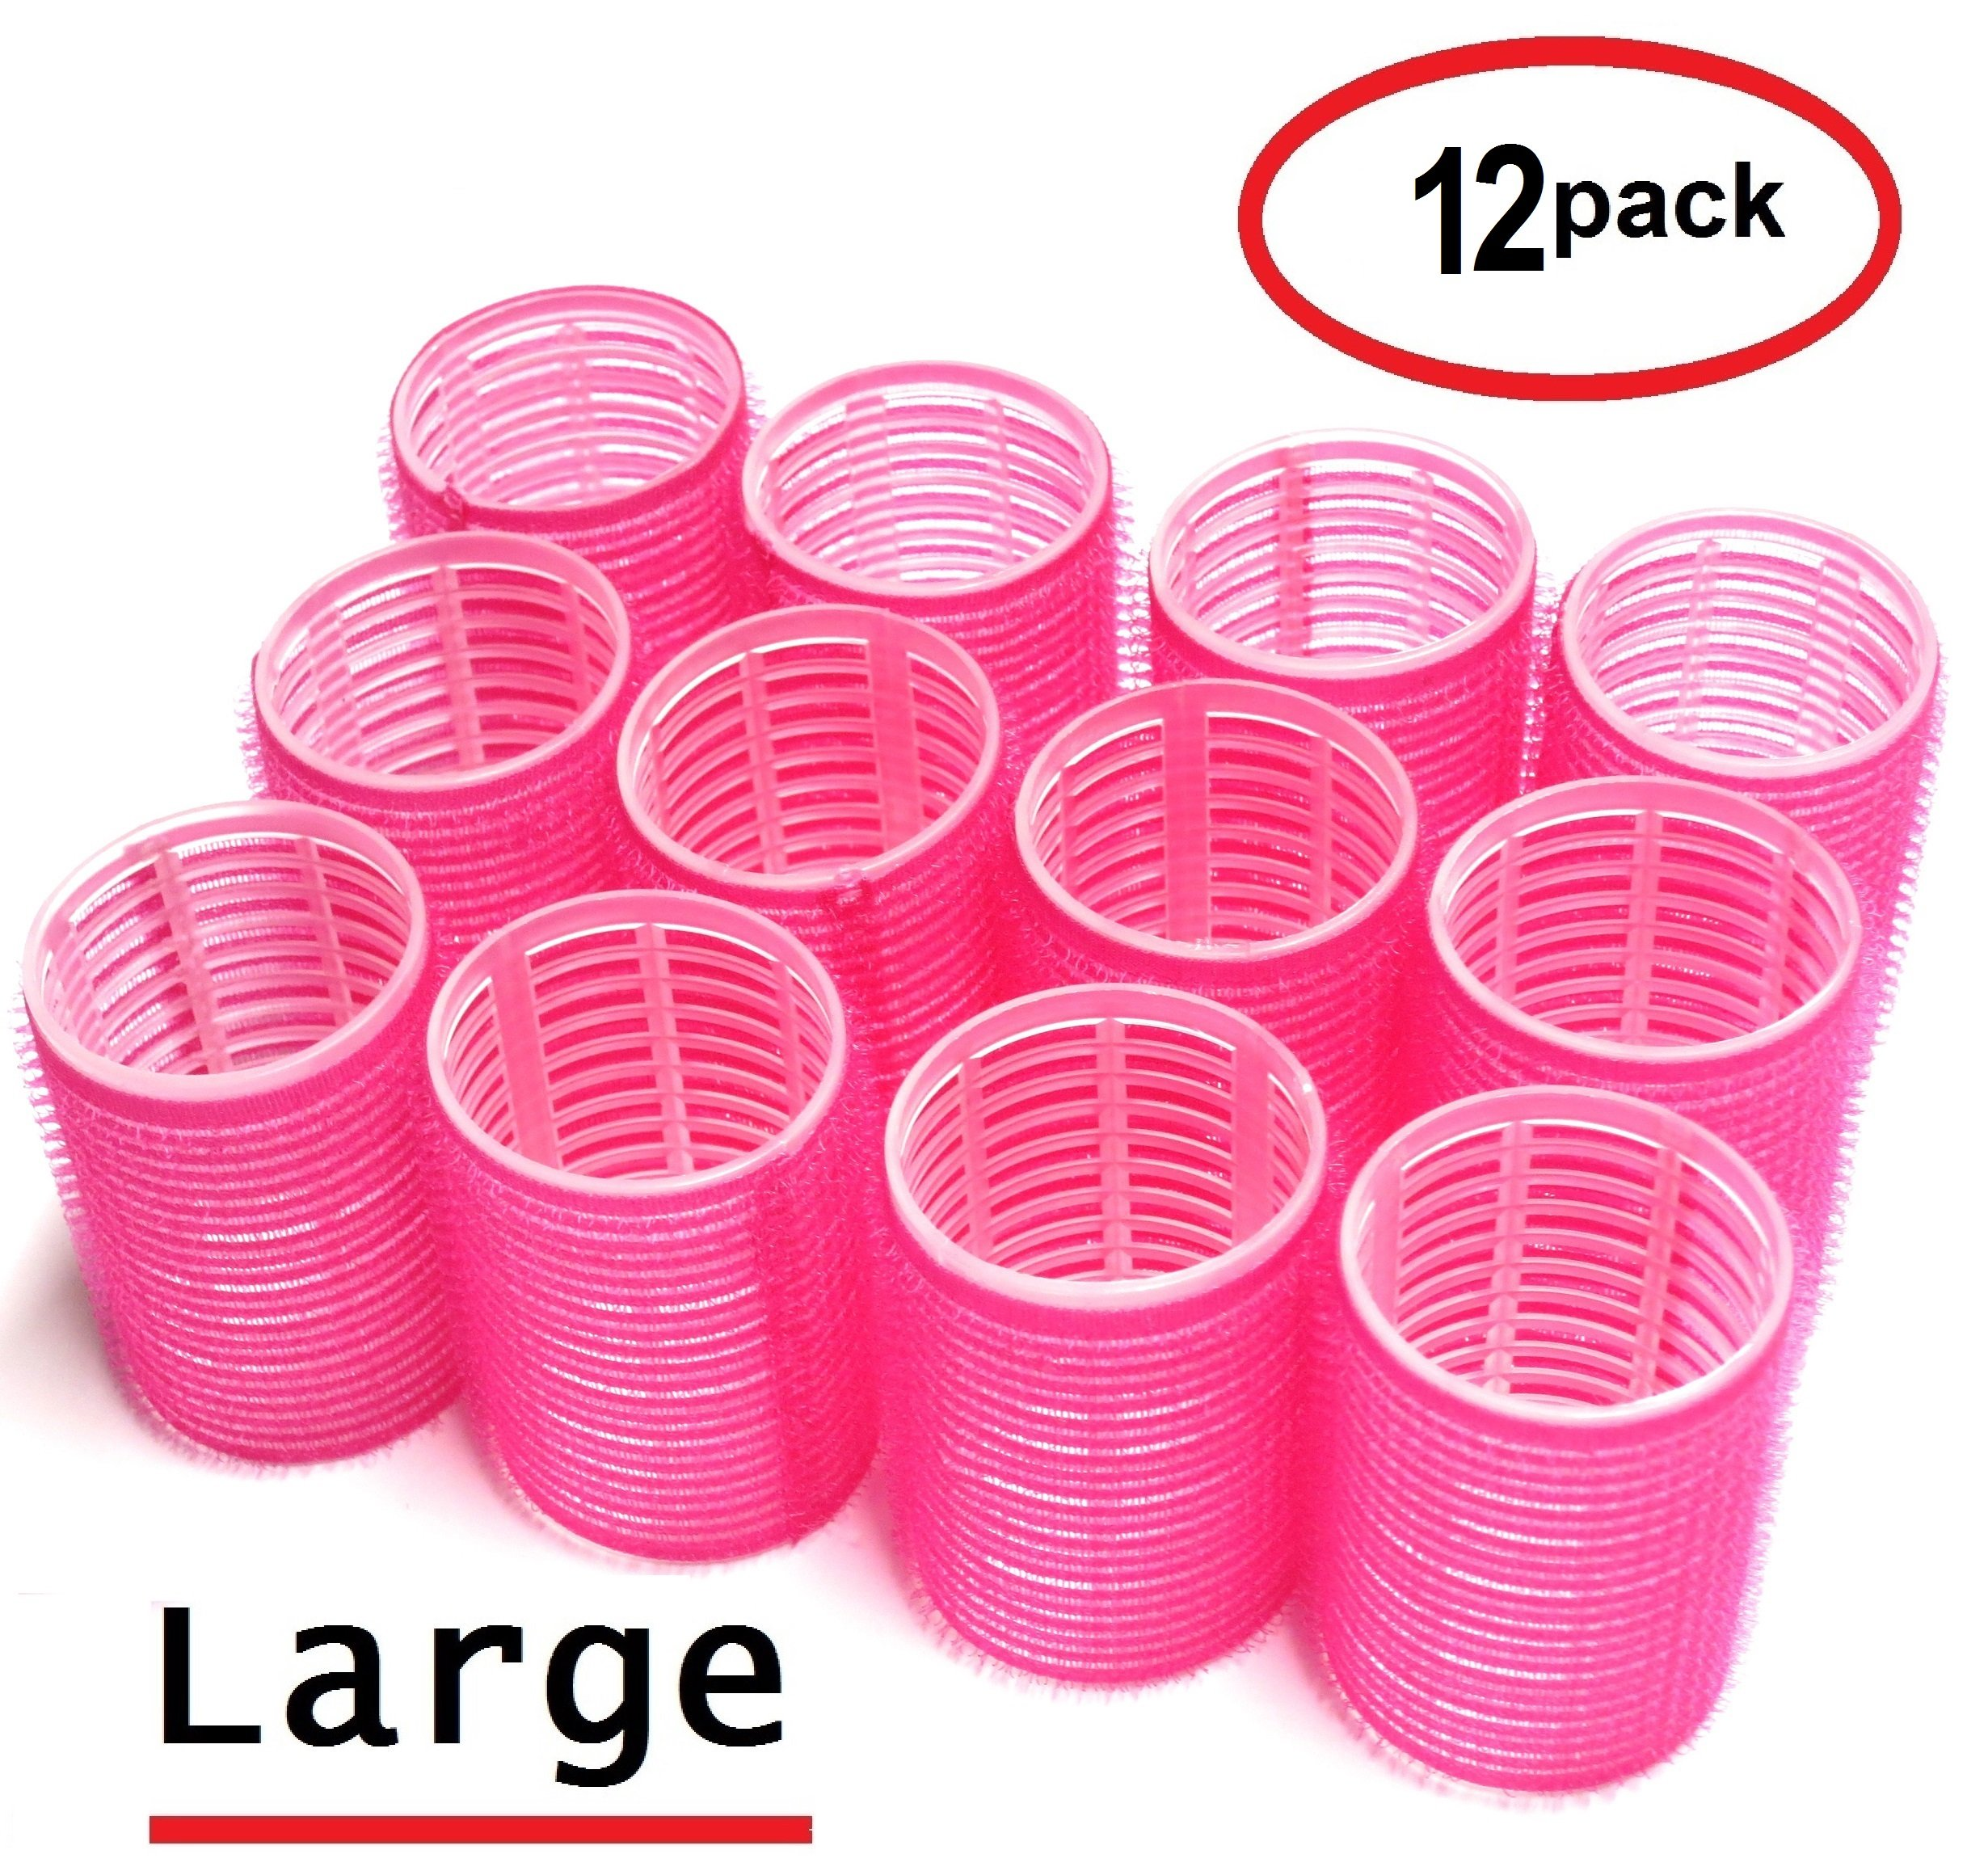 UrbHome Large Hair Rollers, Self Grip, Salon Hairdressing Curlers,Large,(Colors May Vary) ,12 Pack by UrbHome